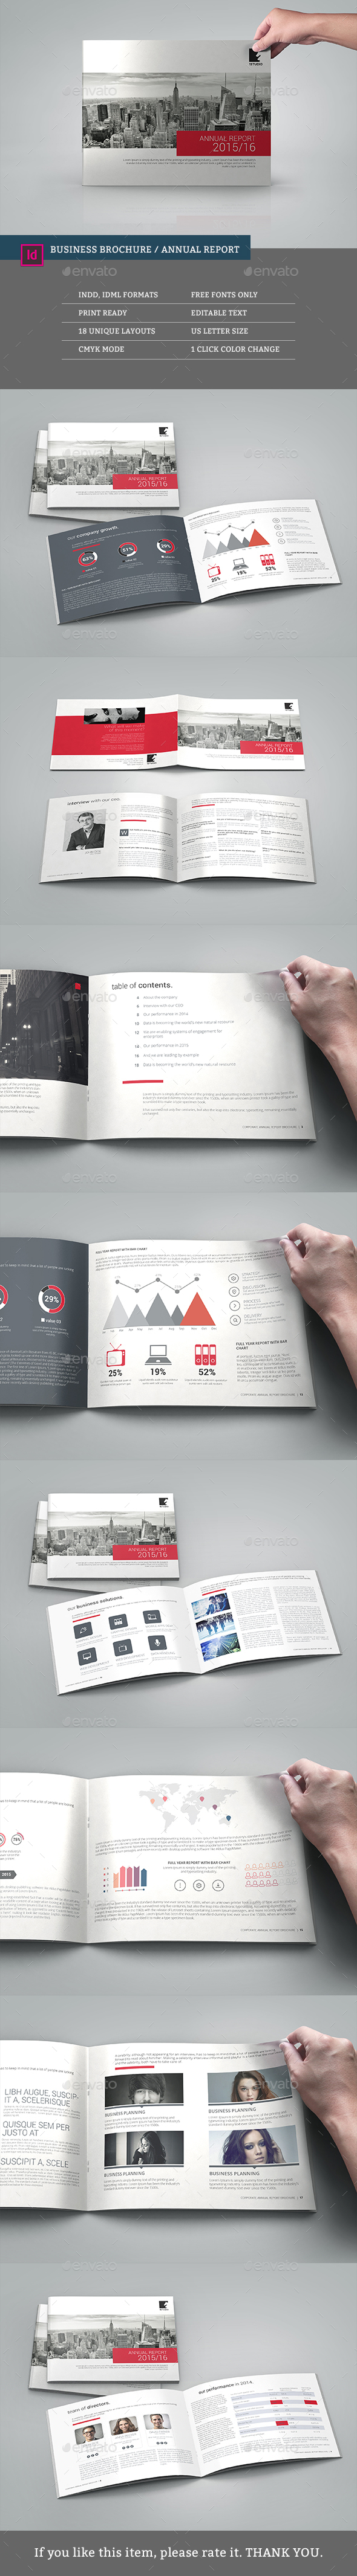 Multipurpose Corporate Annual Report Brochure - Corporate Brochures